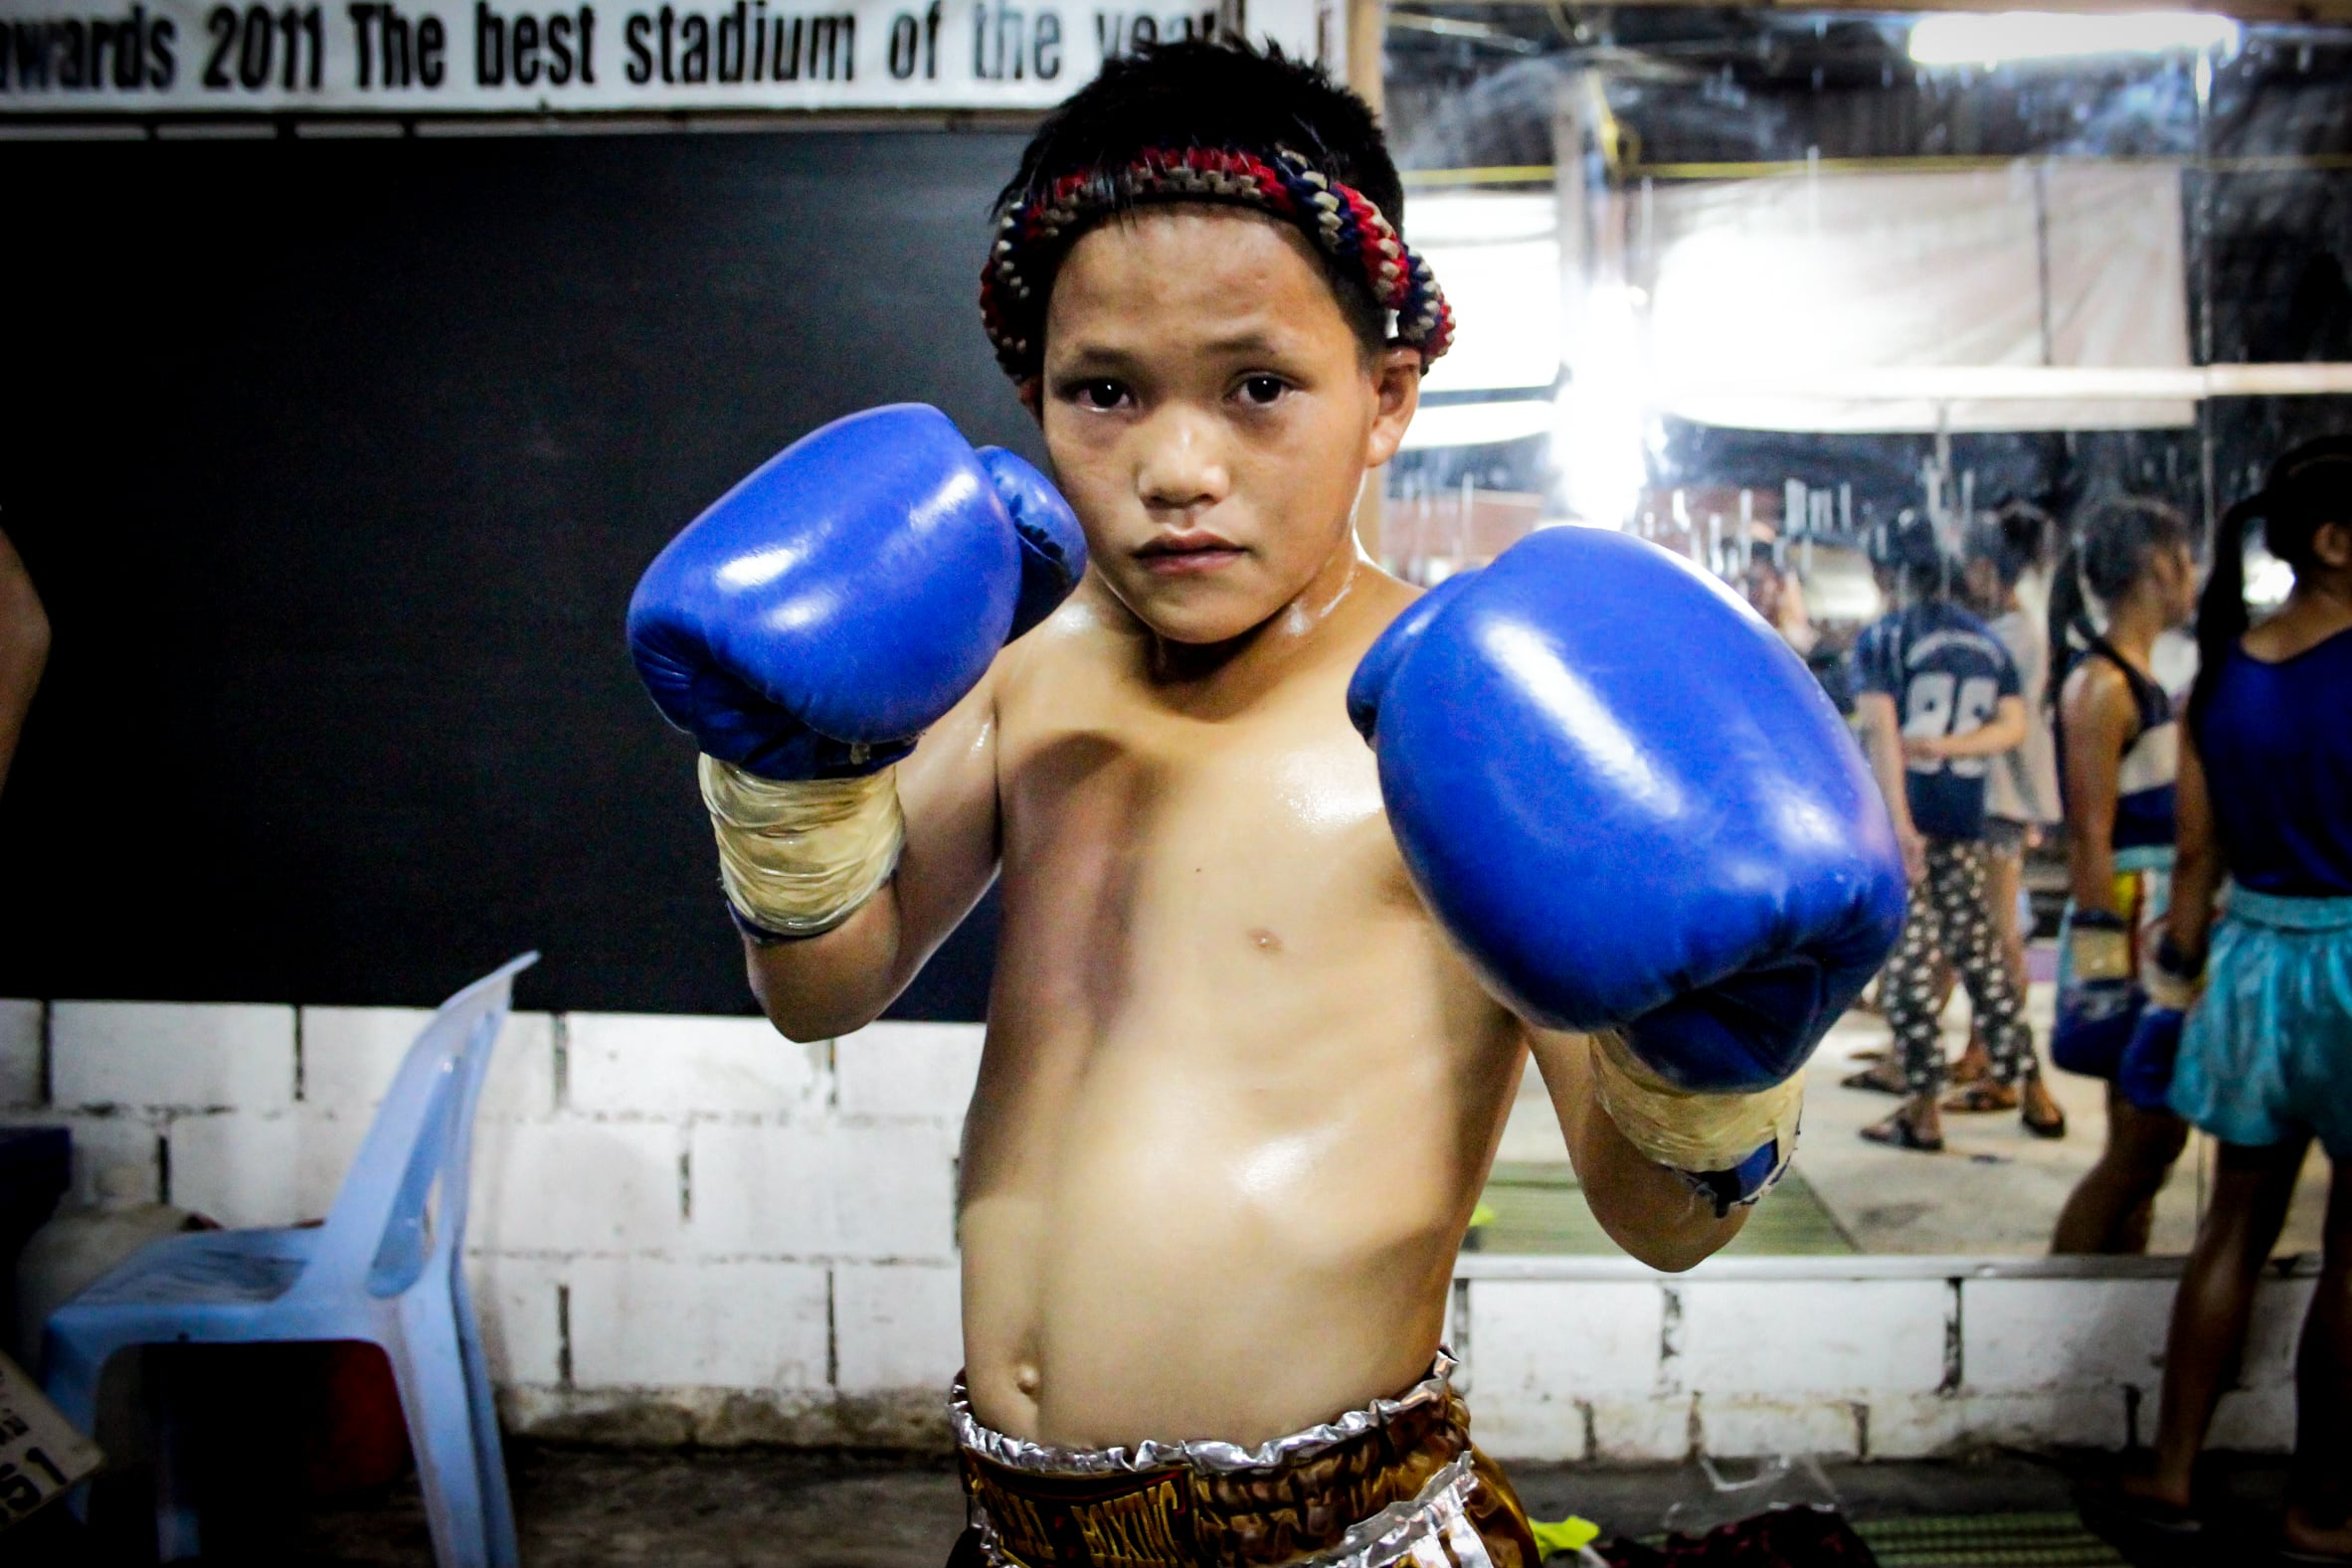 Many children are recruited to start practicing Muay Thai from as young as seven years old. As trainers, spectators and gamblers watch, they fight to win glory for their gym and prize money. For many children and their families, Muay Thai is often seen as an escape from poverty.Chiang Mai, Thailand.